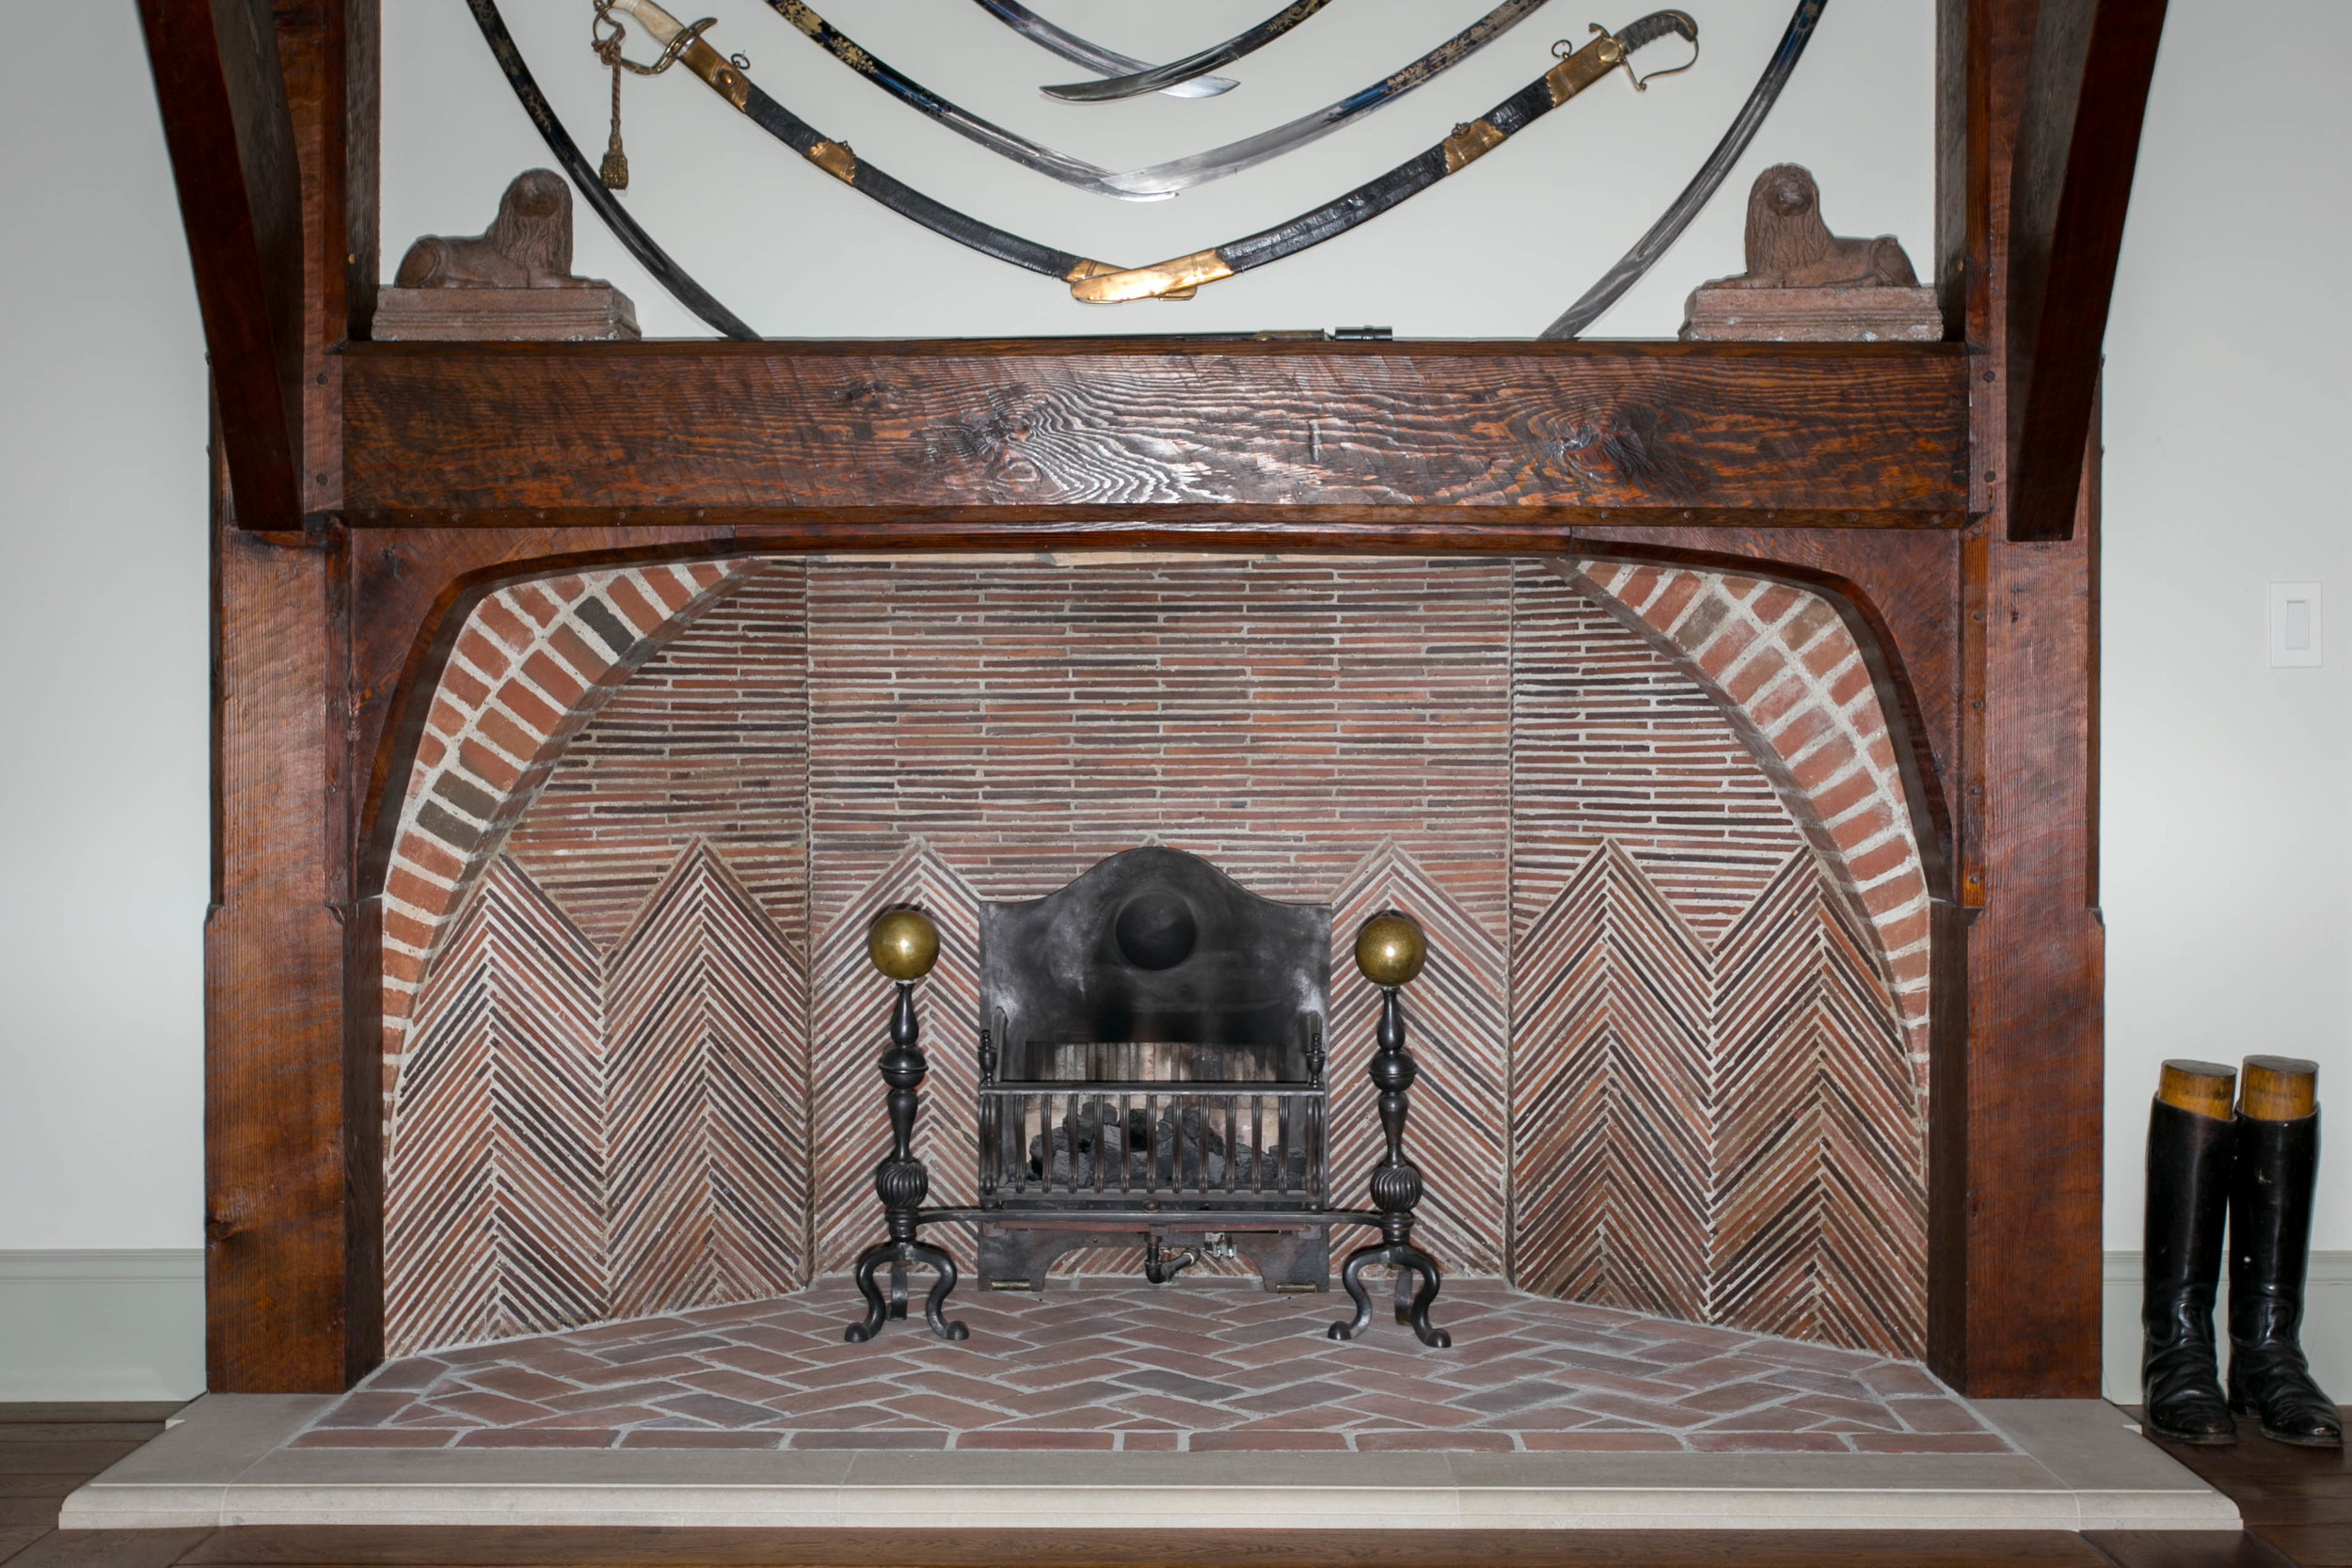 Rumford fireplaces were common from 1796, when Count Rumford first wrote about them, until about 1850. Jefferson had them built at Monticello. This Arts and Crafts design was originally built at Deanery Garden, Berkshire , England in 1899